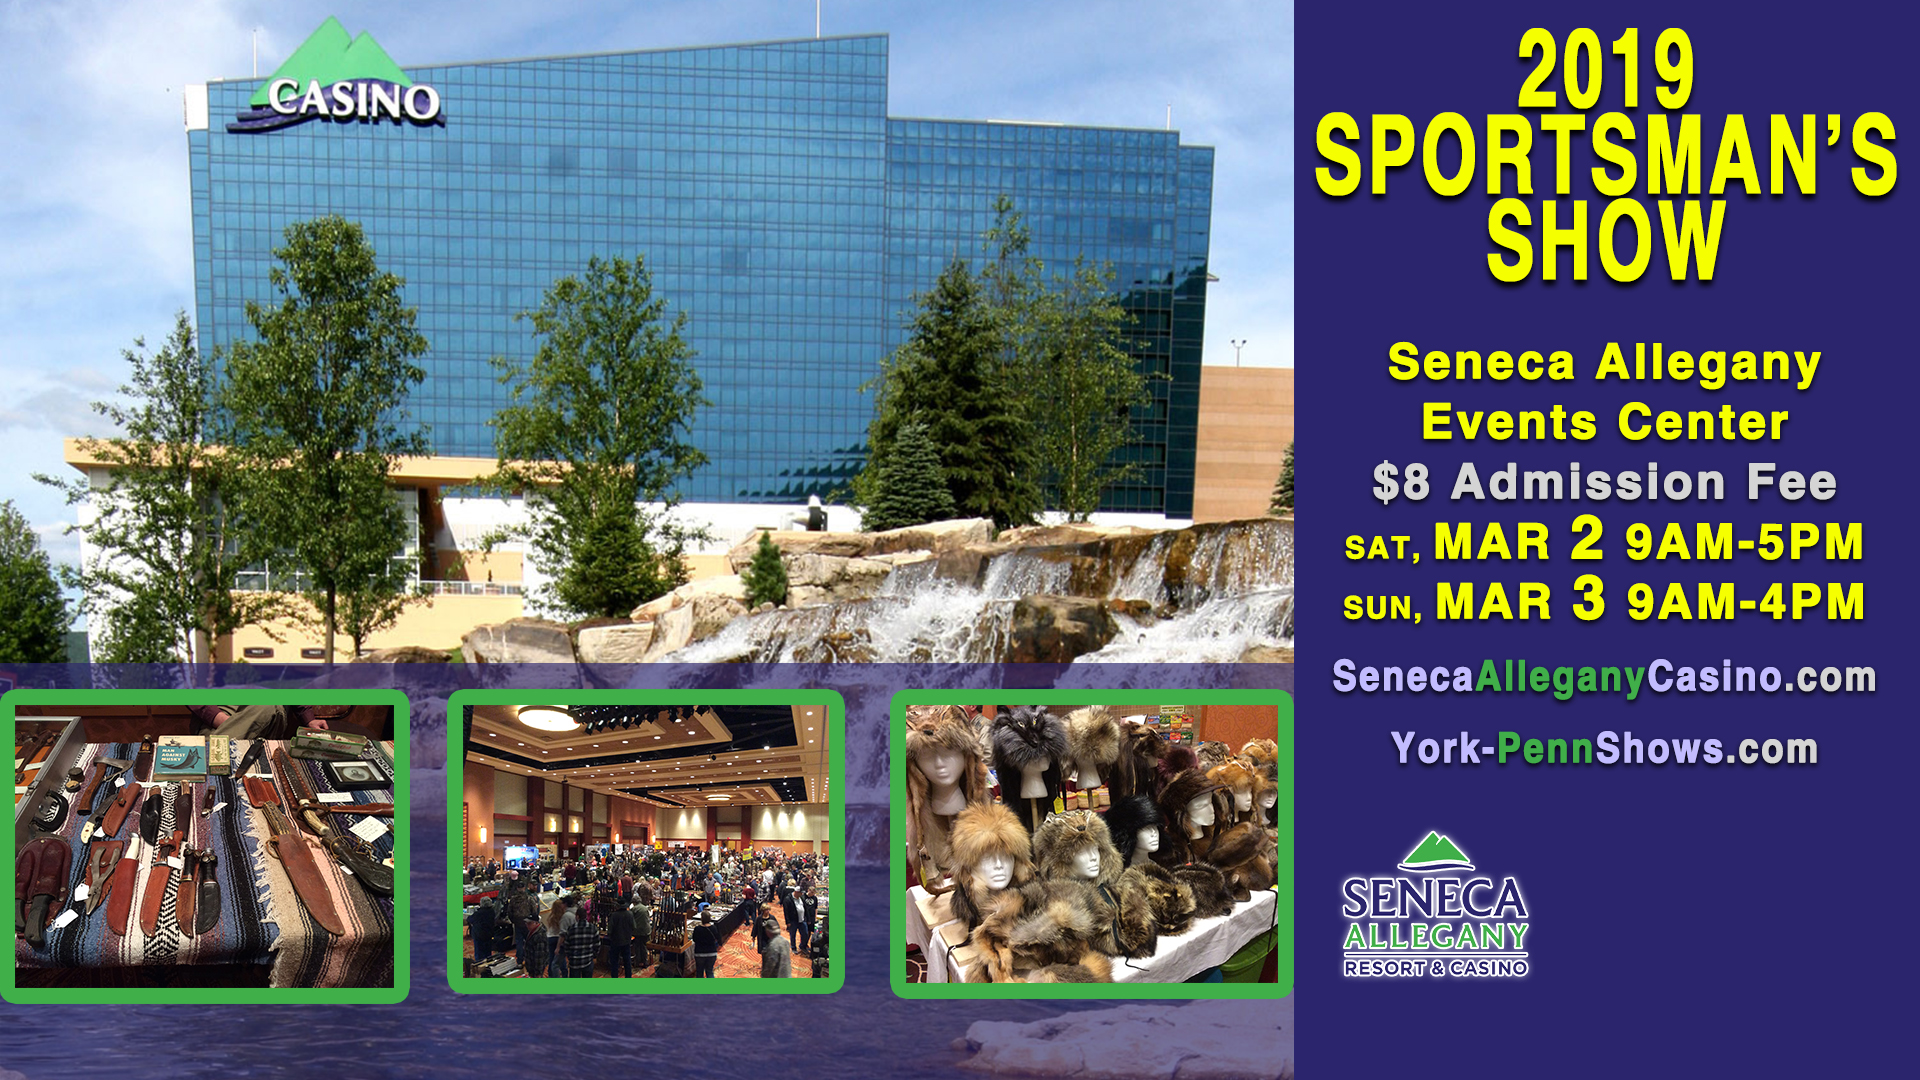 2019 Sportsman's Show at the Casino